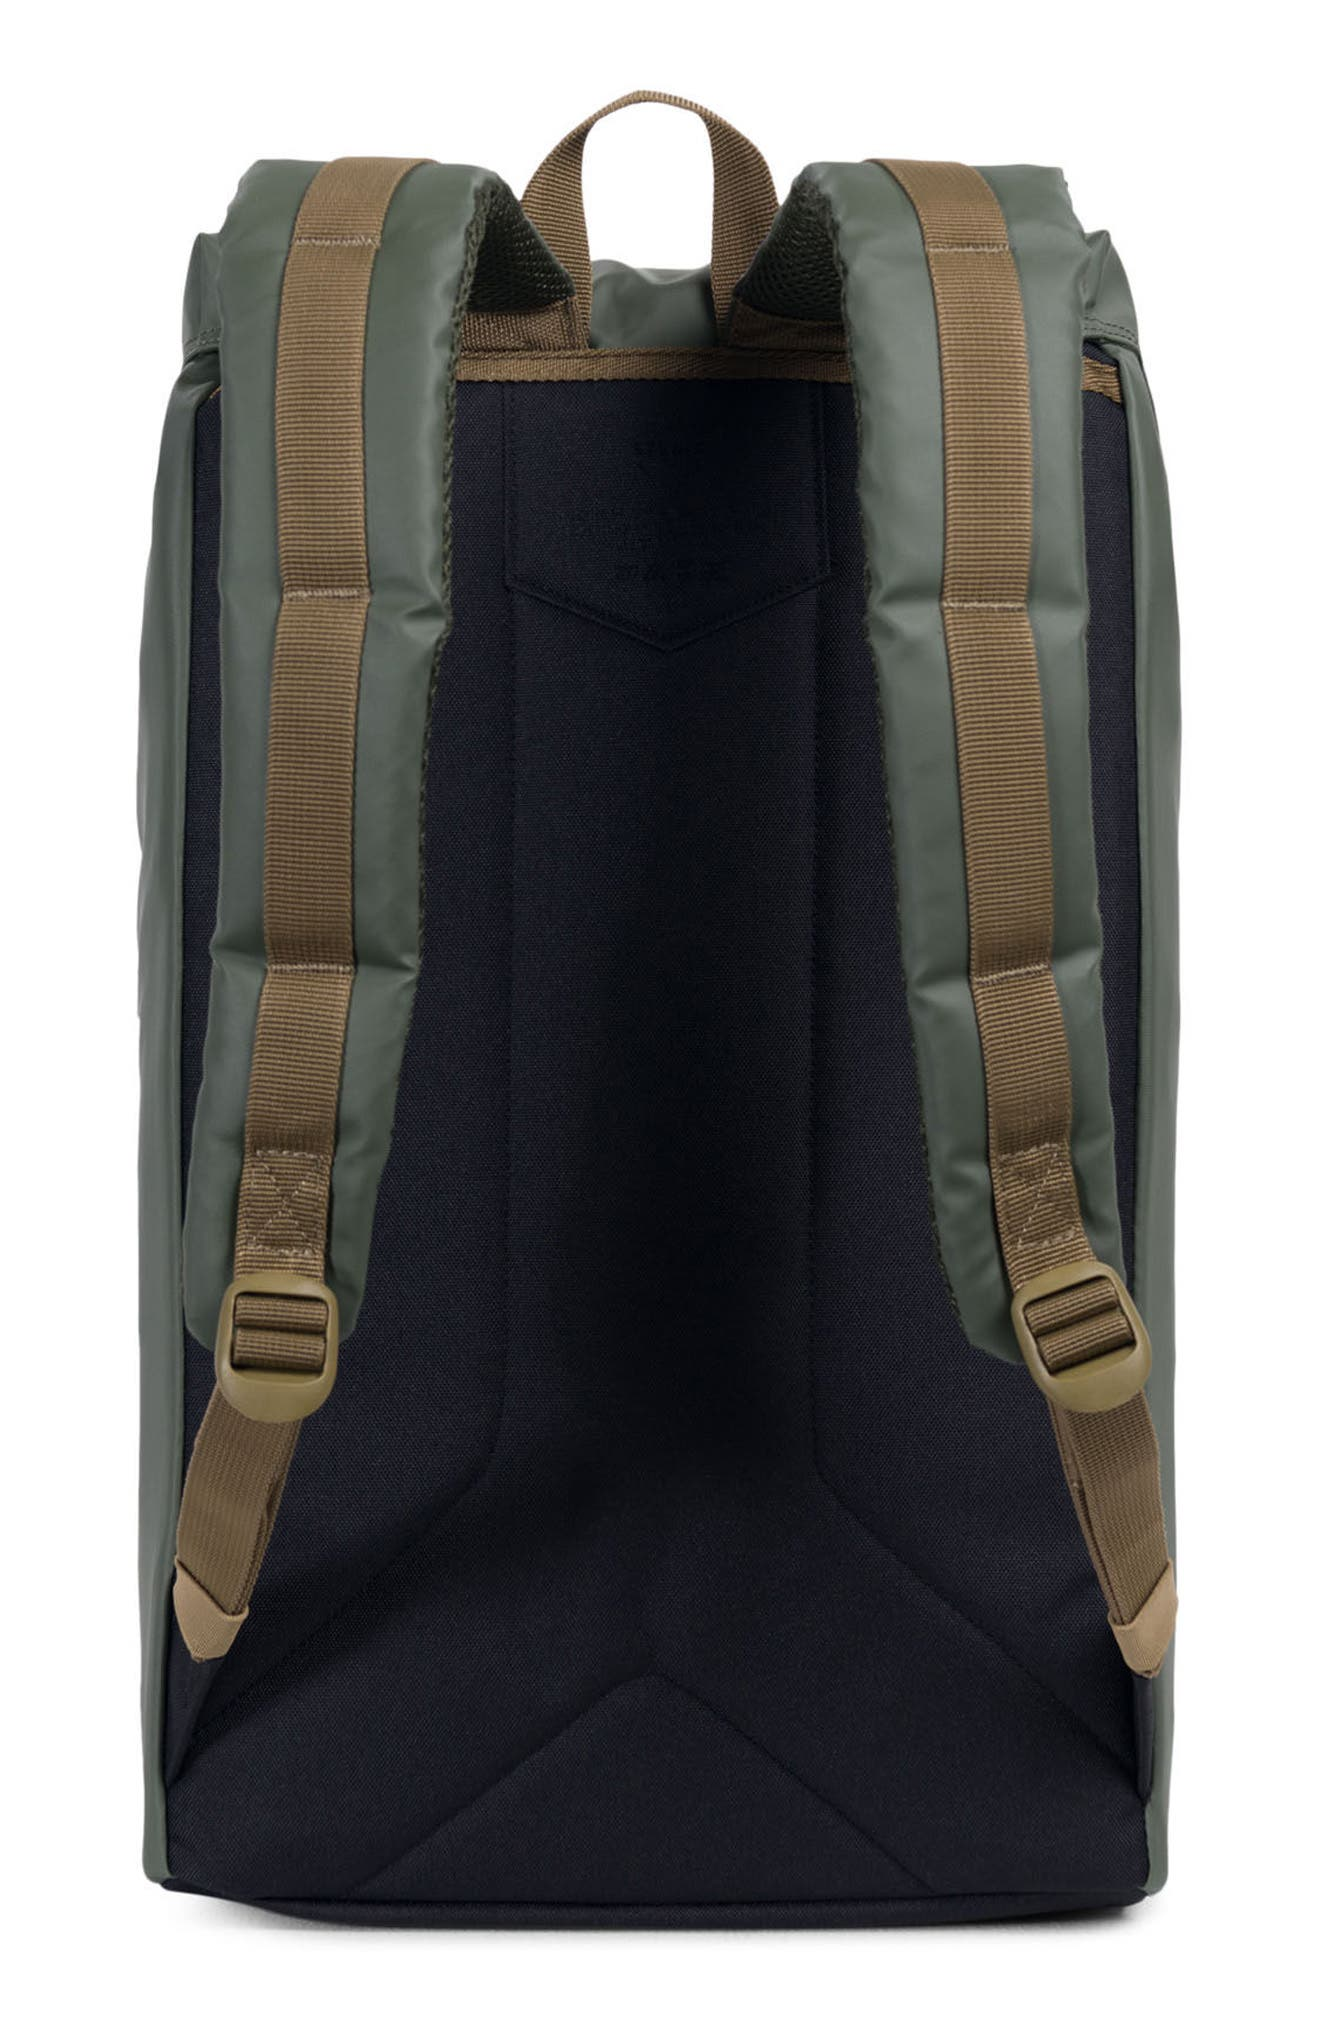 Little America Studio Collection Backpack,                             Alternate thumbnail 2, color,                             Beetle/ Black/ Gothic Olive